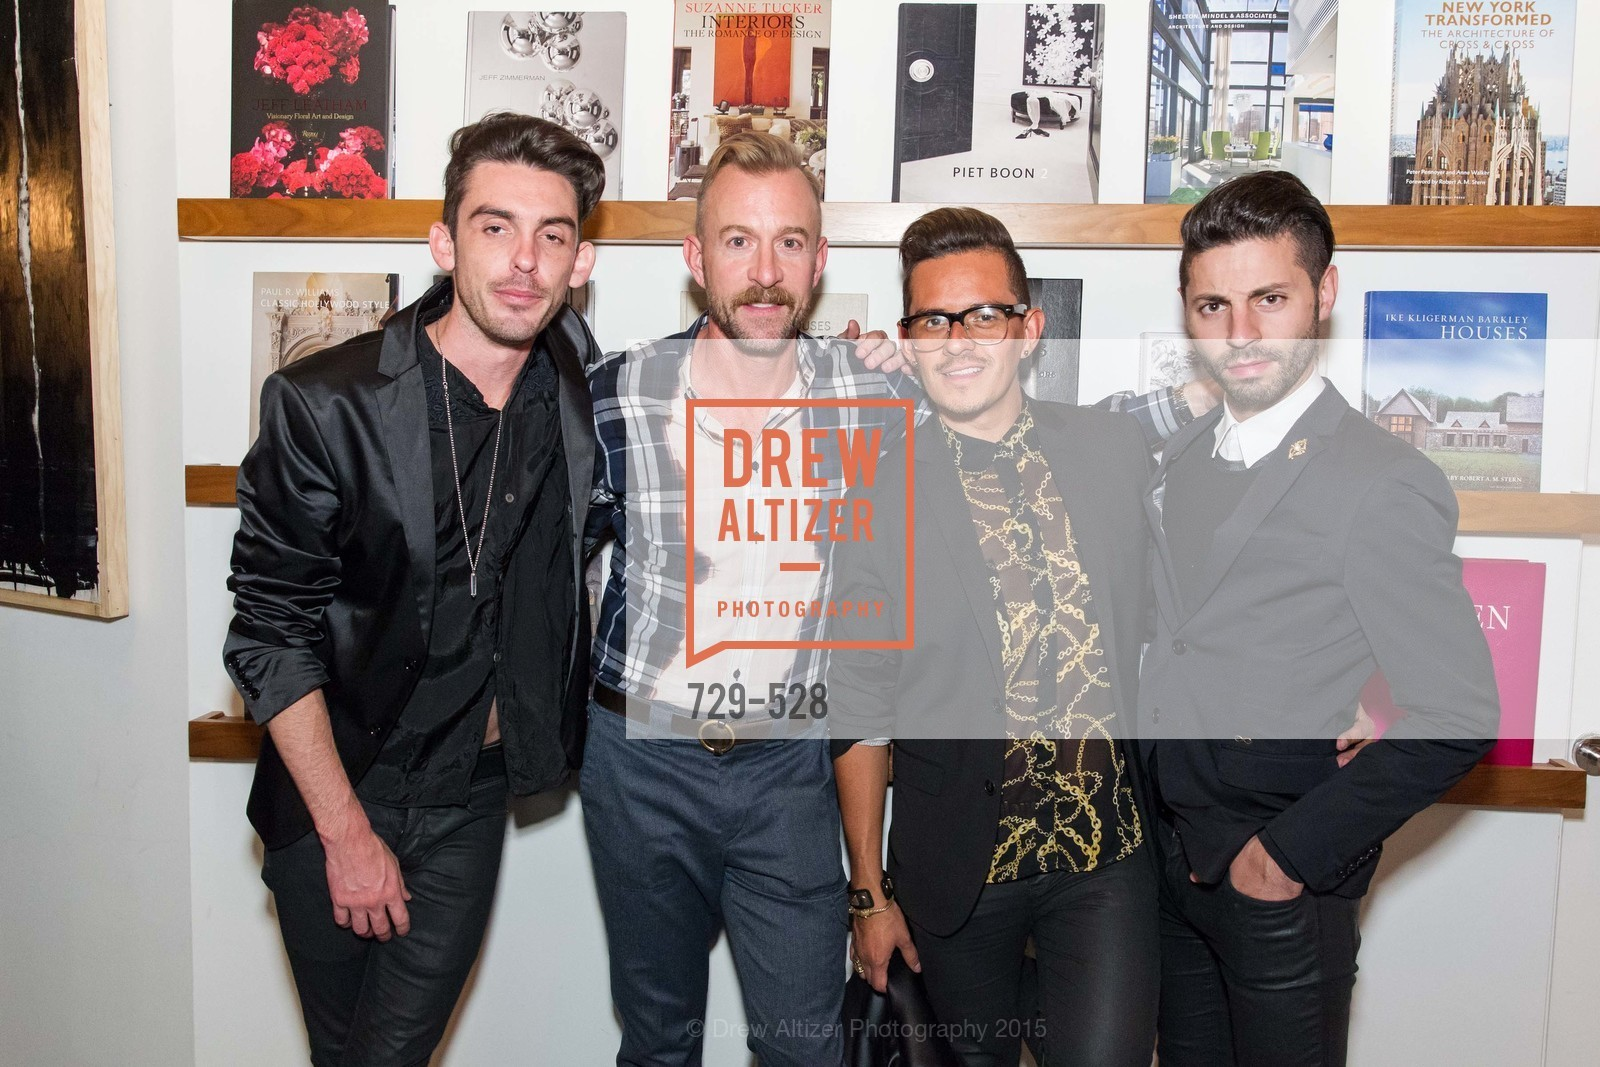 Matt Browne, Michael Purdy, Agustin Sanders, Ryan Daugherty, Jay Jeffers for Arteriors Launch, Jay Jeffers - The Store. 1035 Post St, November 12th, 2015,Drew Altizer, Drew Altizer Photography, full-service agency, private events, San Francisco photographer, photographer california